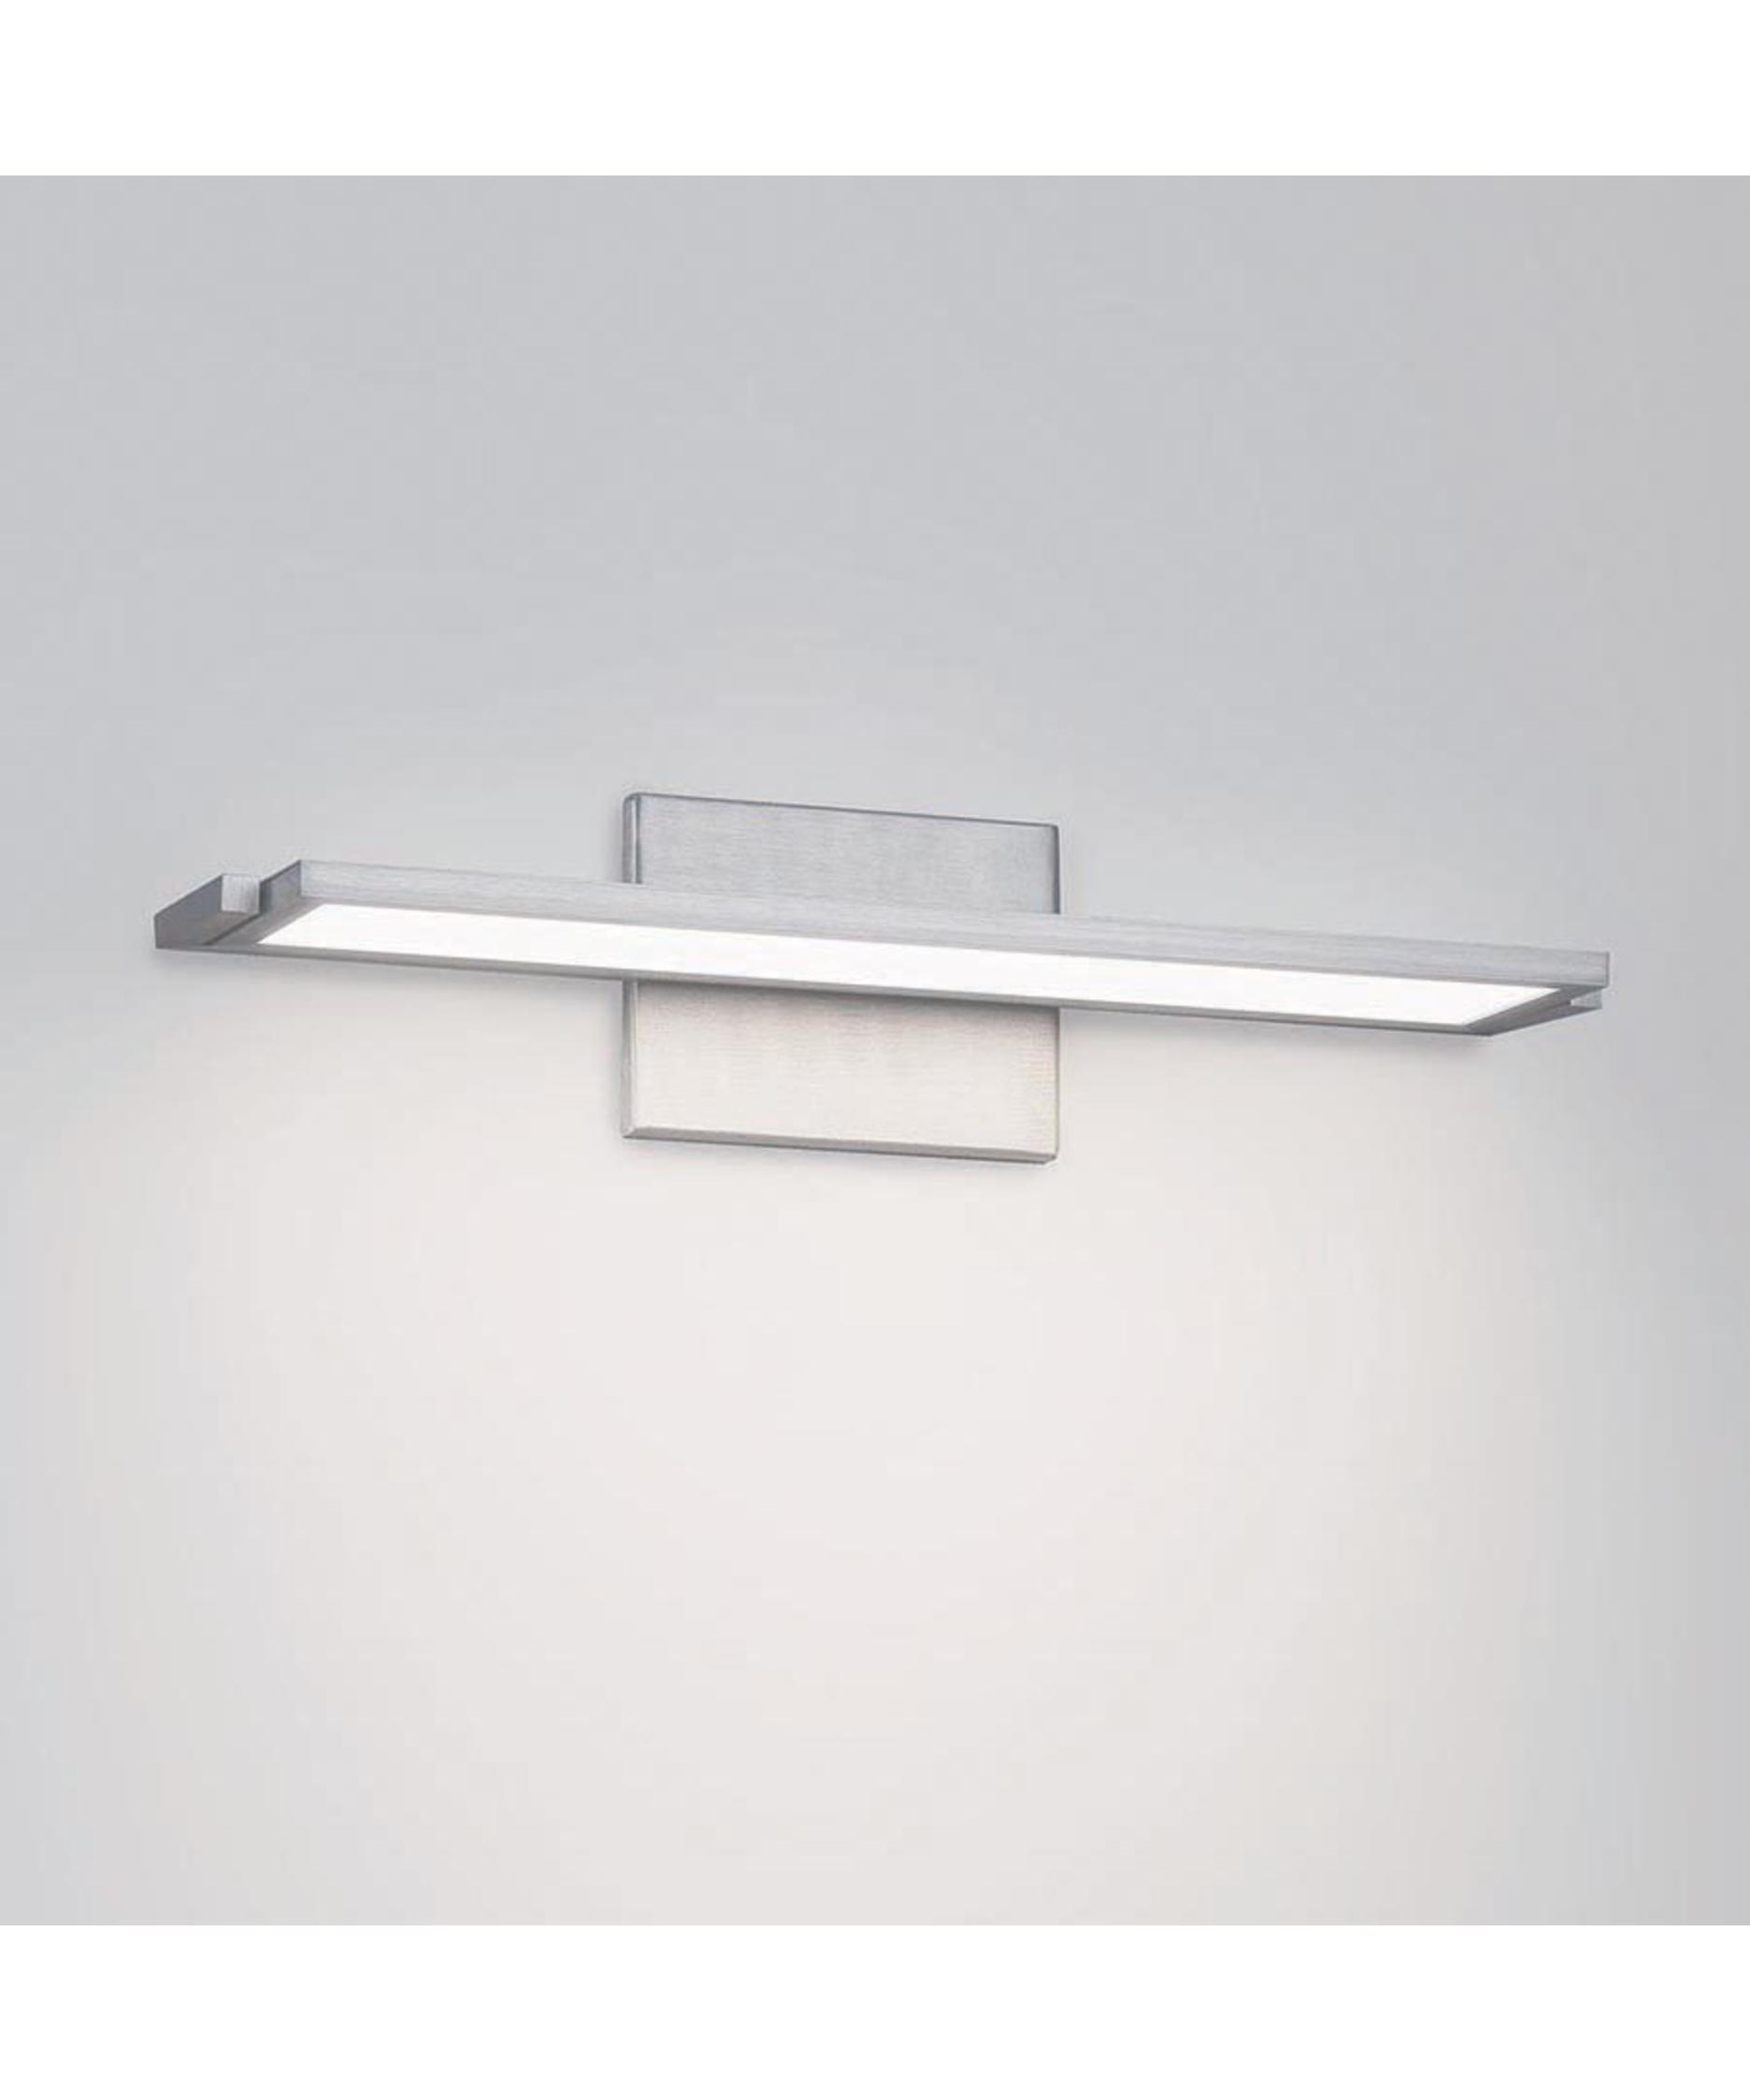 Awesome WAC Lighting WS44512 DwelLED Kube 2Light Vanity Fixture